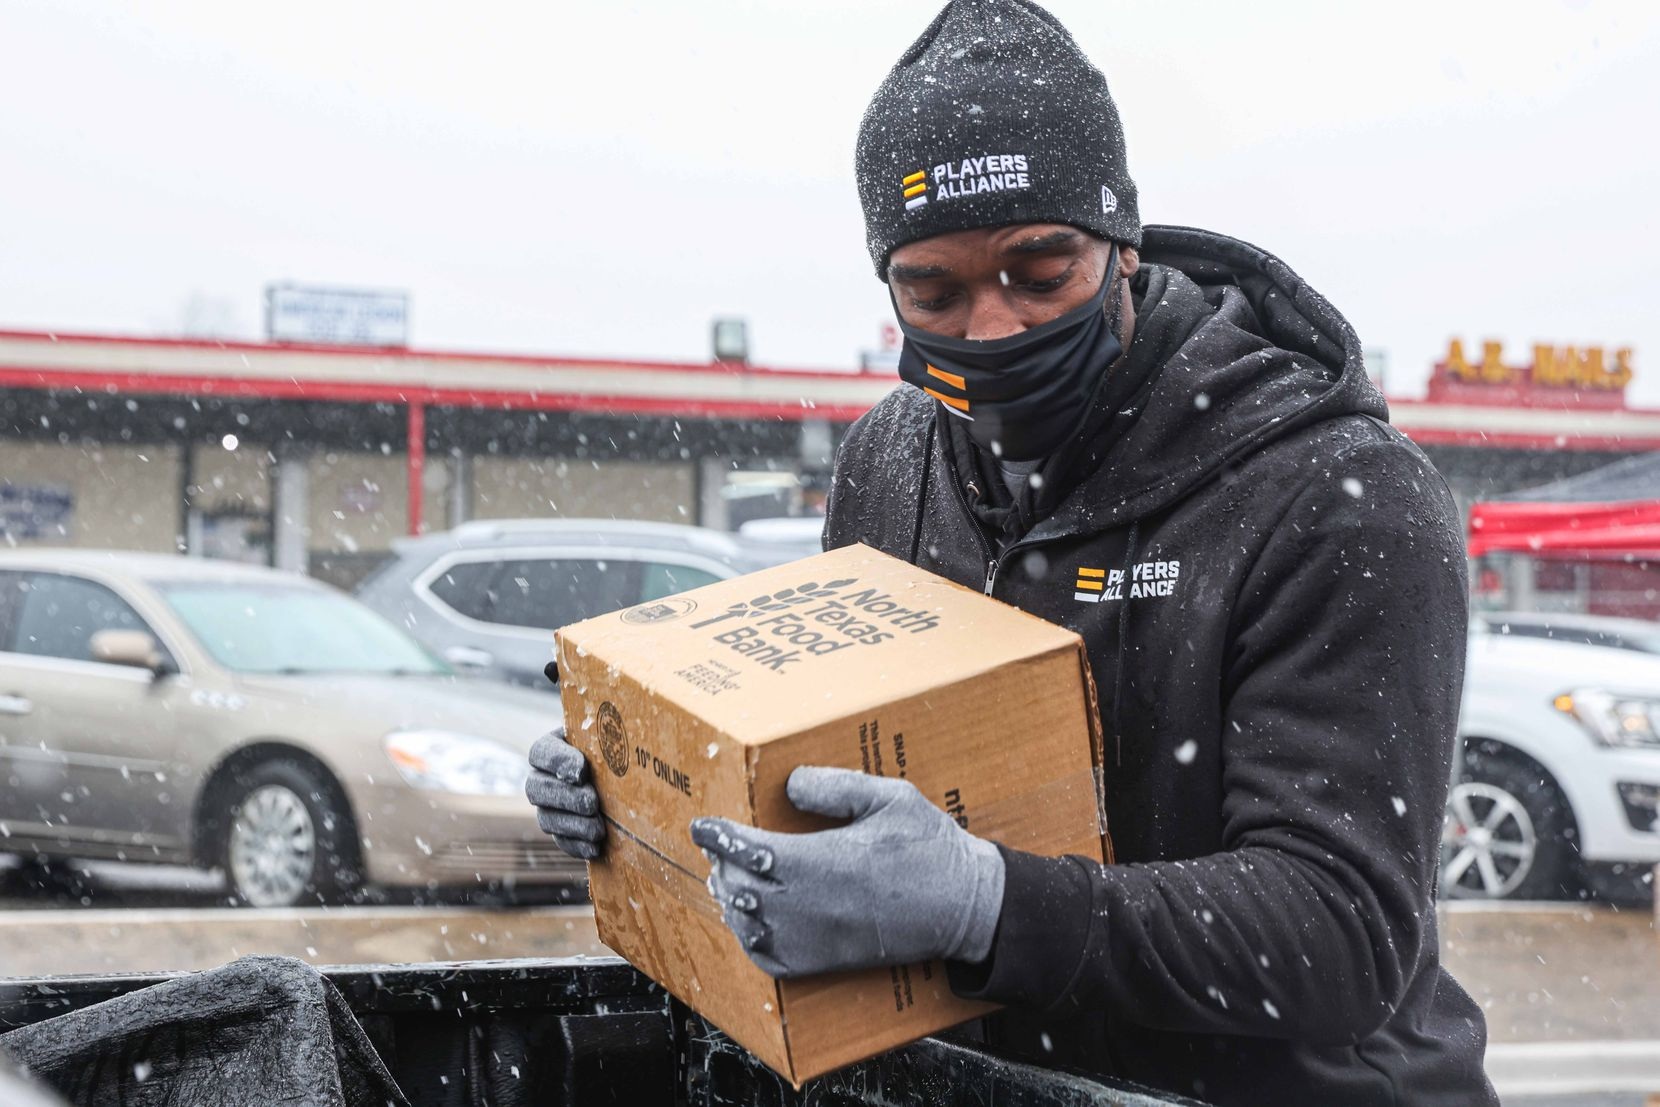 Rangers pitcher Taylor Hearn, places a box of food in the truck of a car as part of the donations made by the MLB Players Alliance in Oak Cliff on Sunday, January 10, 2021.